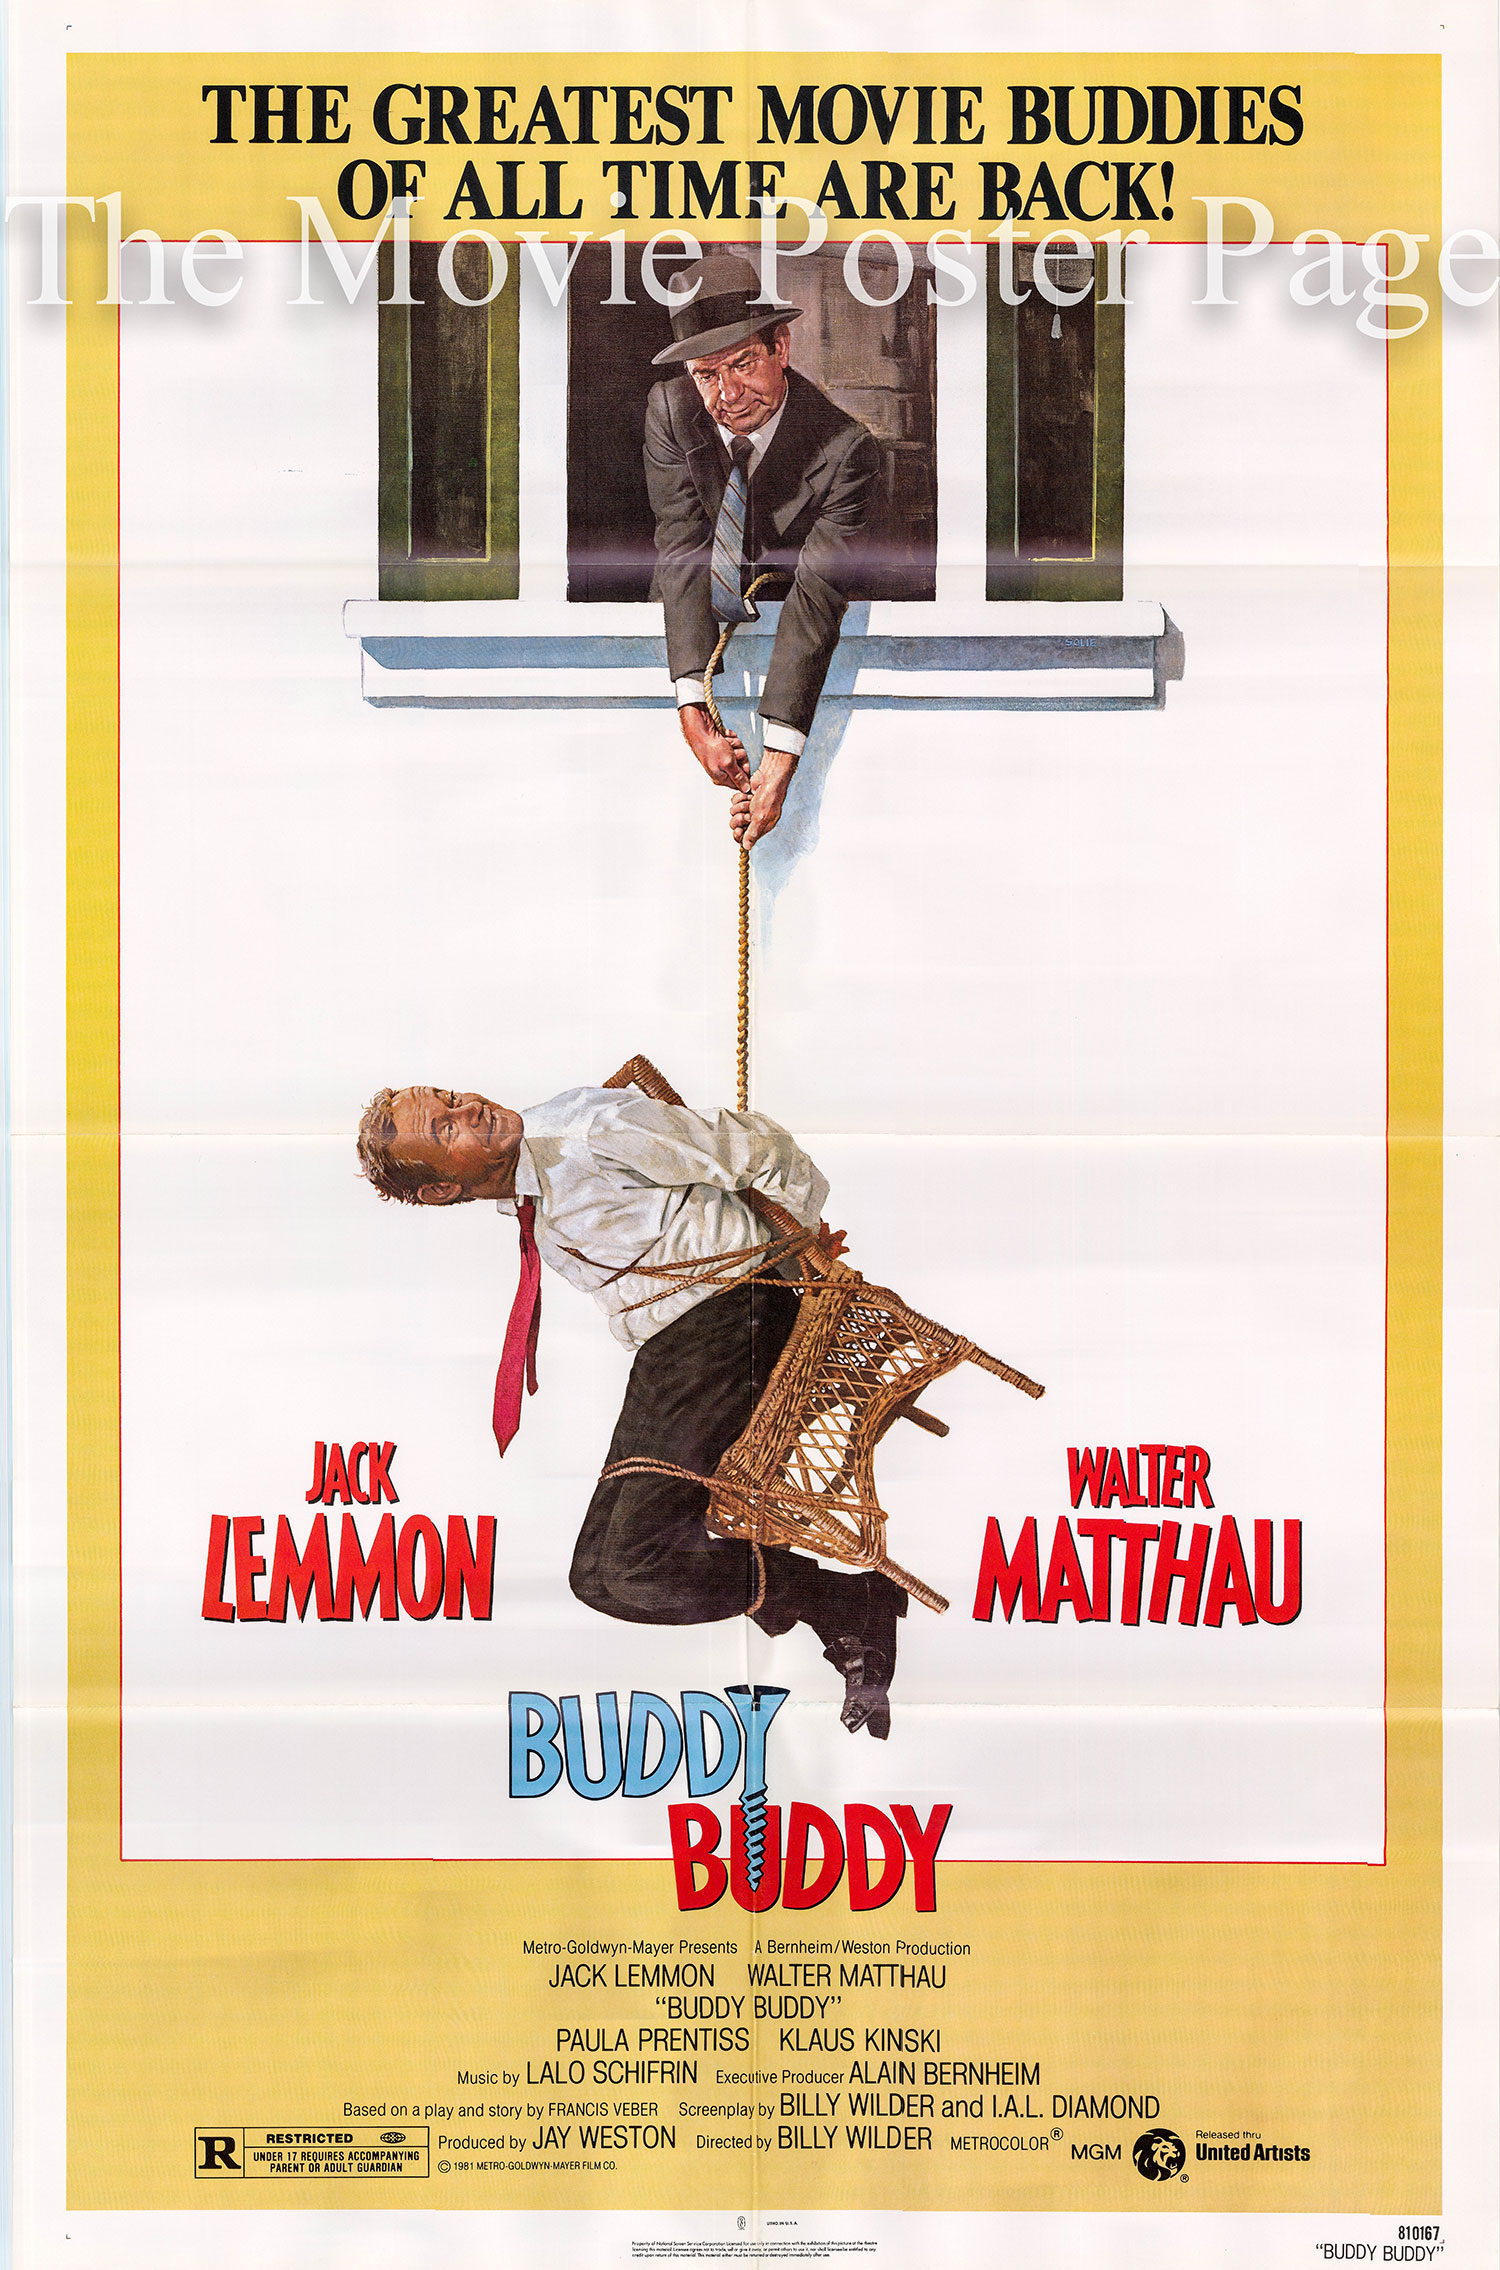 Pictured is a US one-sheet poster for the 1981 Billy Wilder film Buddy Buddy starring Jack Lemmon and Walter Matthau.